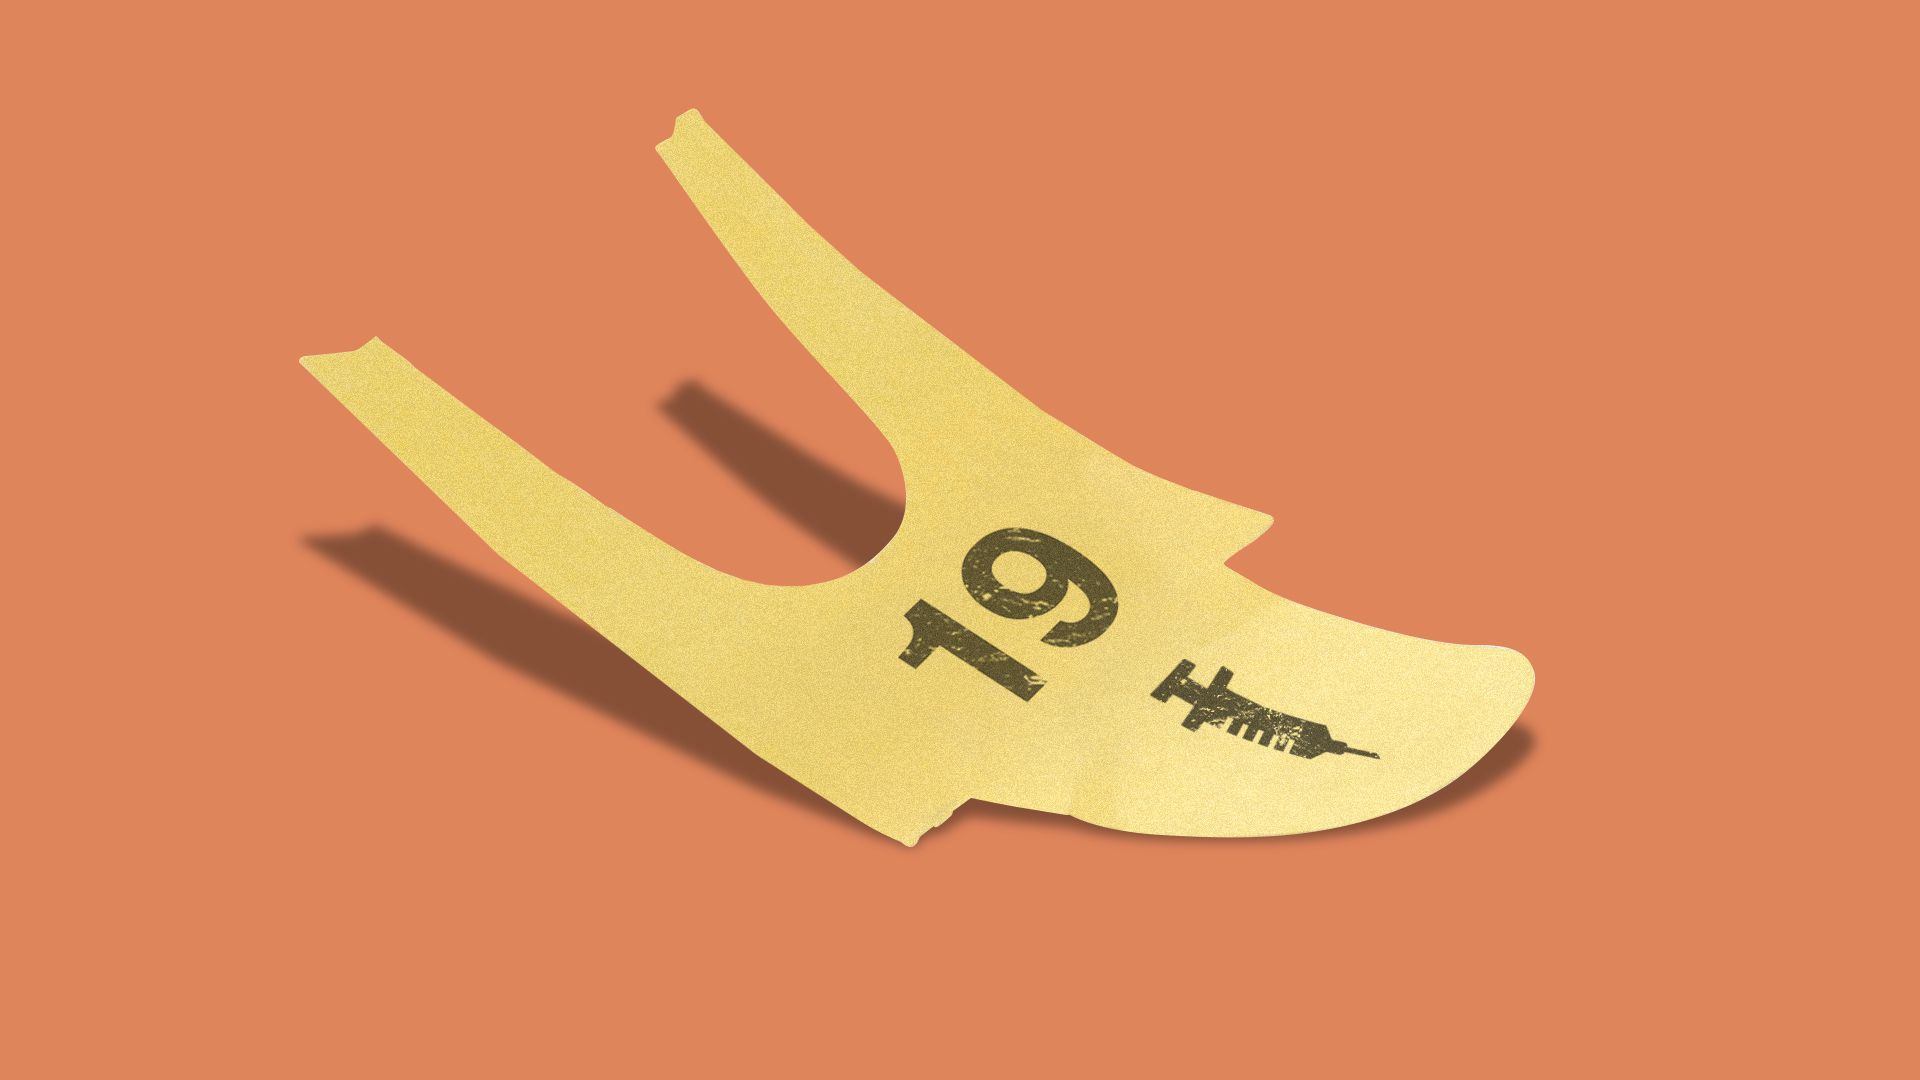 Illustration of a waiting ticket with the number 19 on it and a symbol of a syringe.